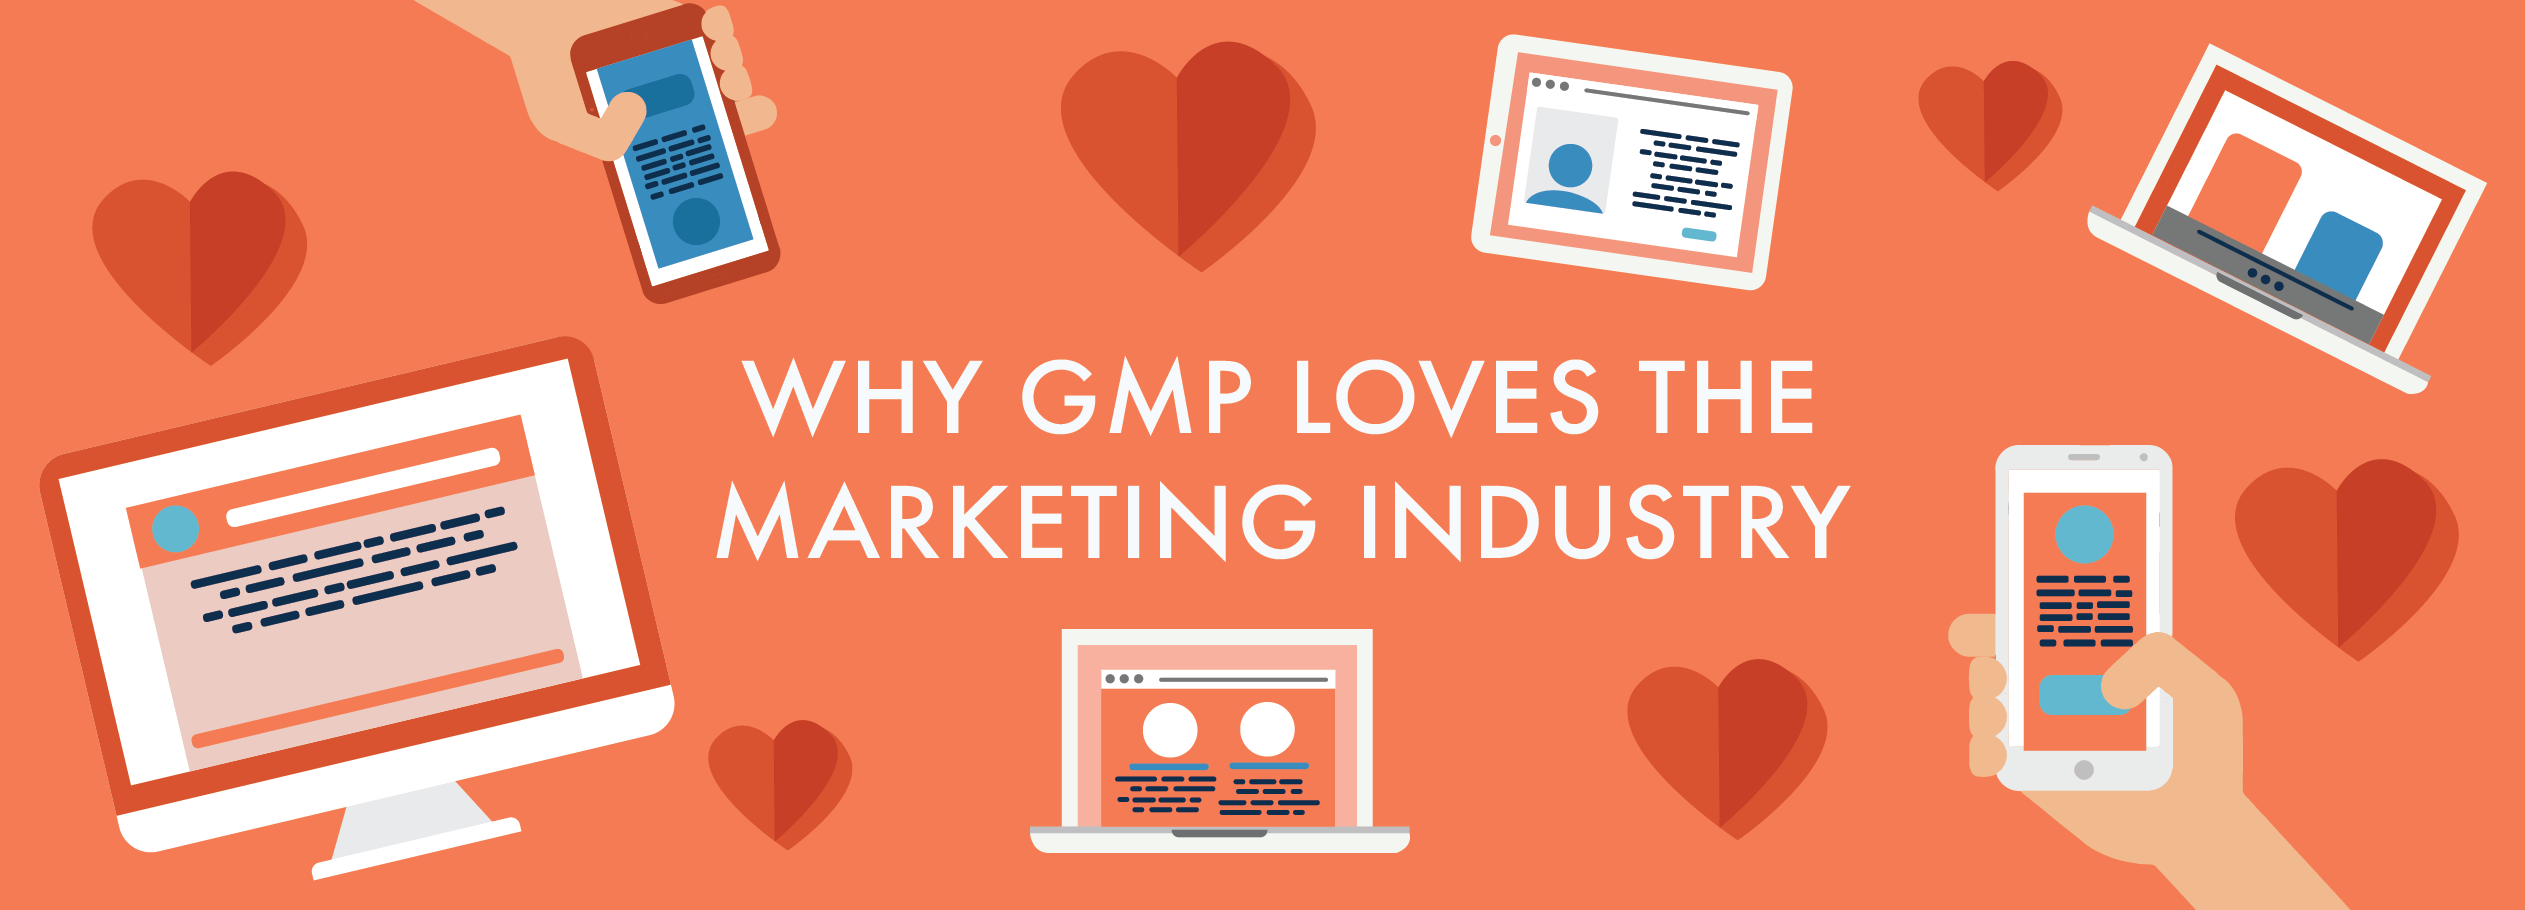 Why GMP Loves the Marketing Industry